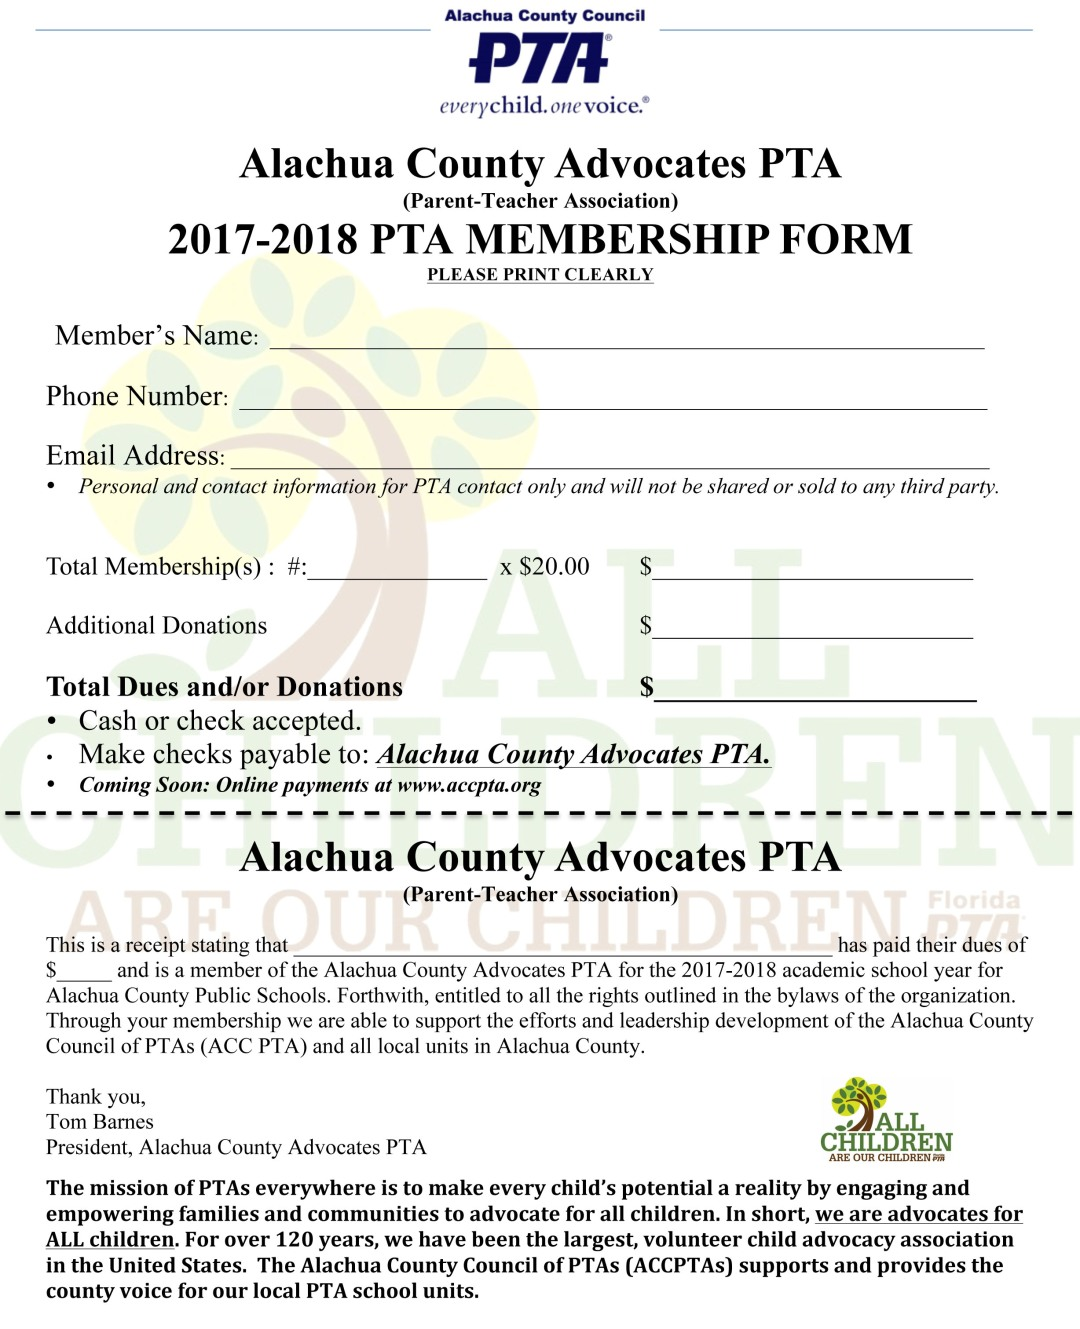 Alachua County Advocates PTA MEMBERSHIP FORM